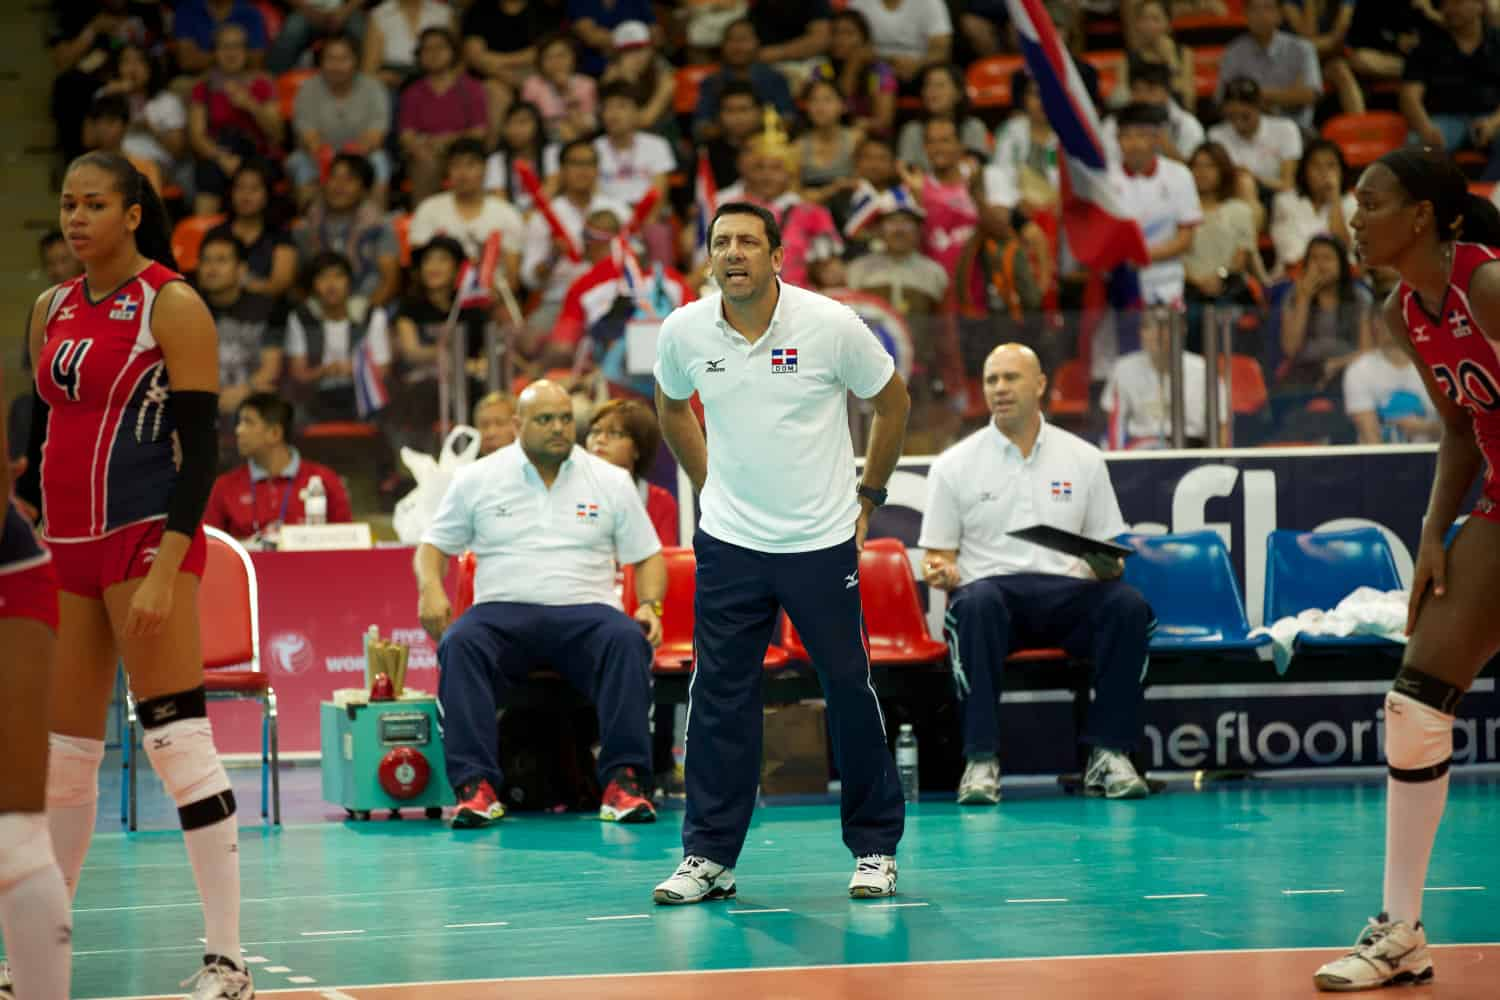 Volleyball coach on sidelines giving instructions to his team